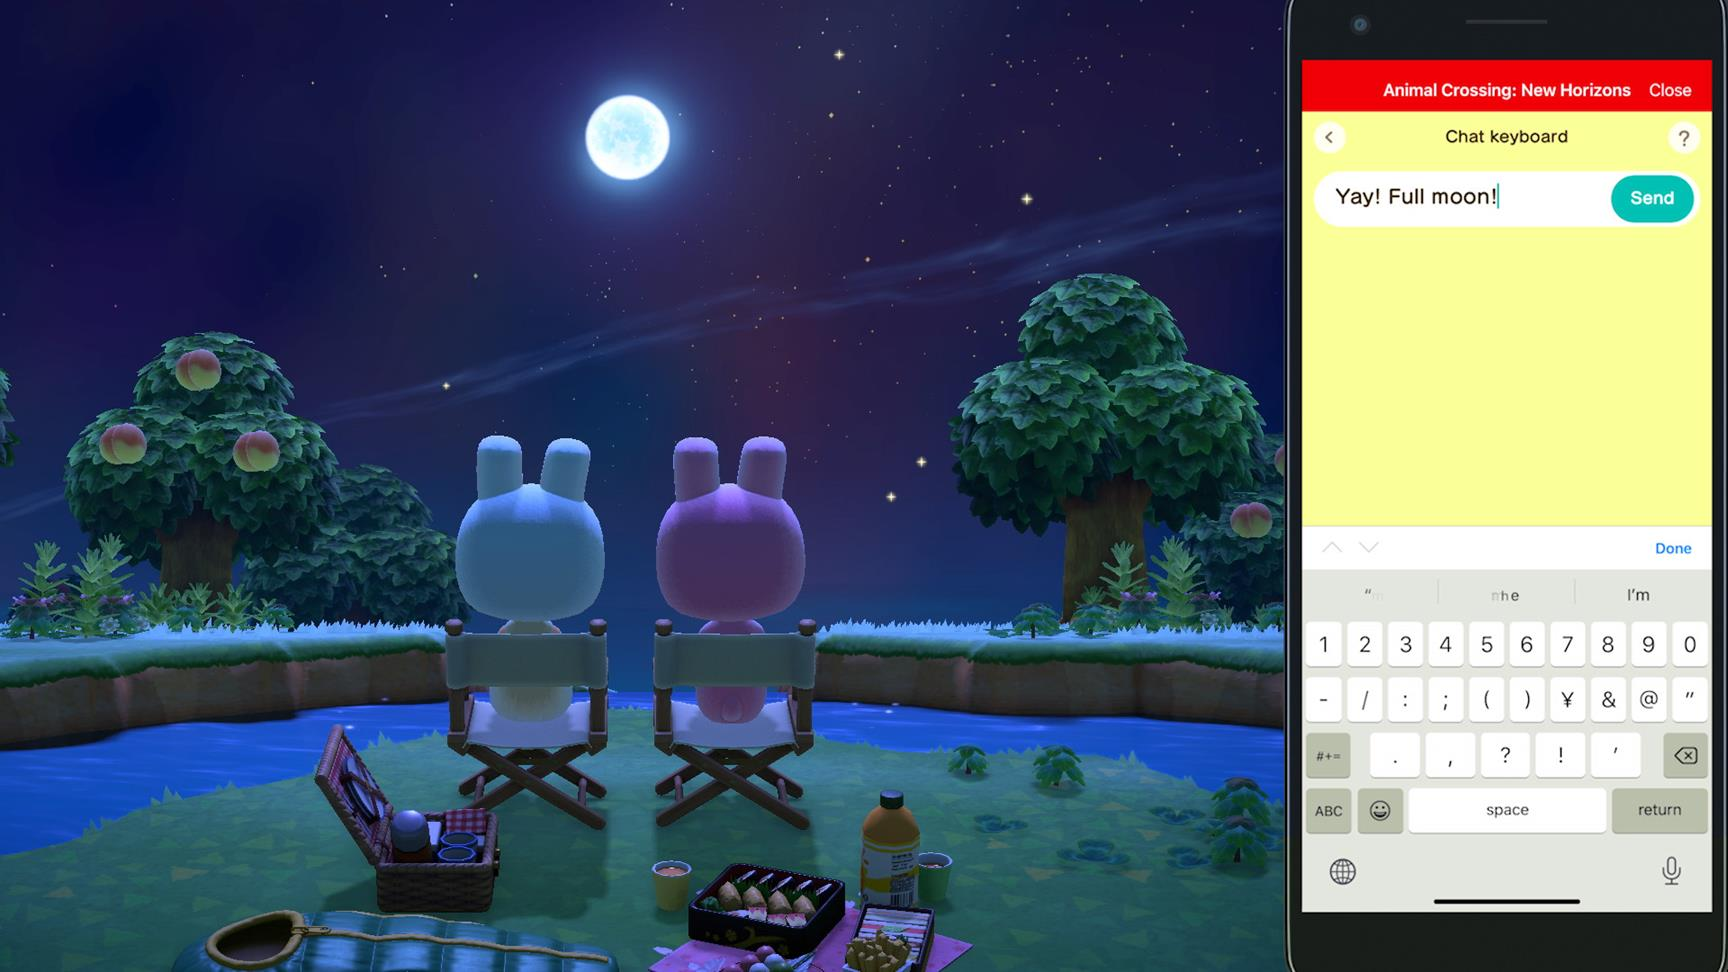 Animal Crossing New Horizons Nooklink Will Let You Transfer